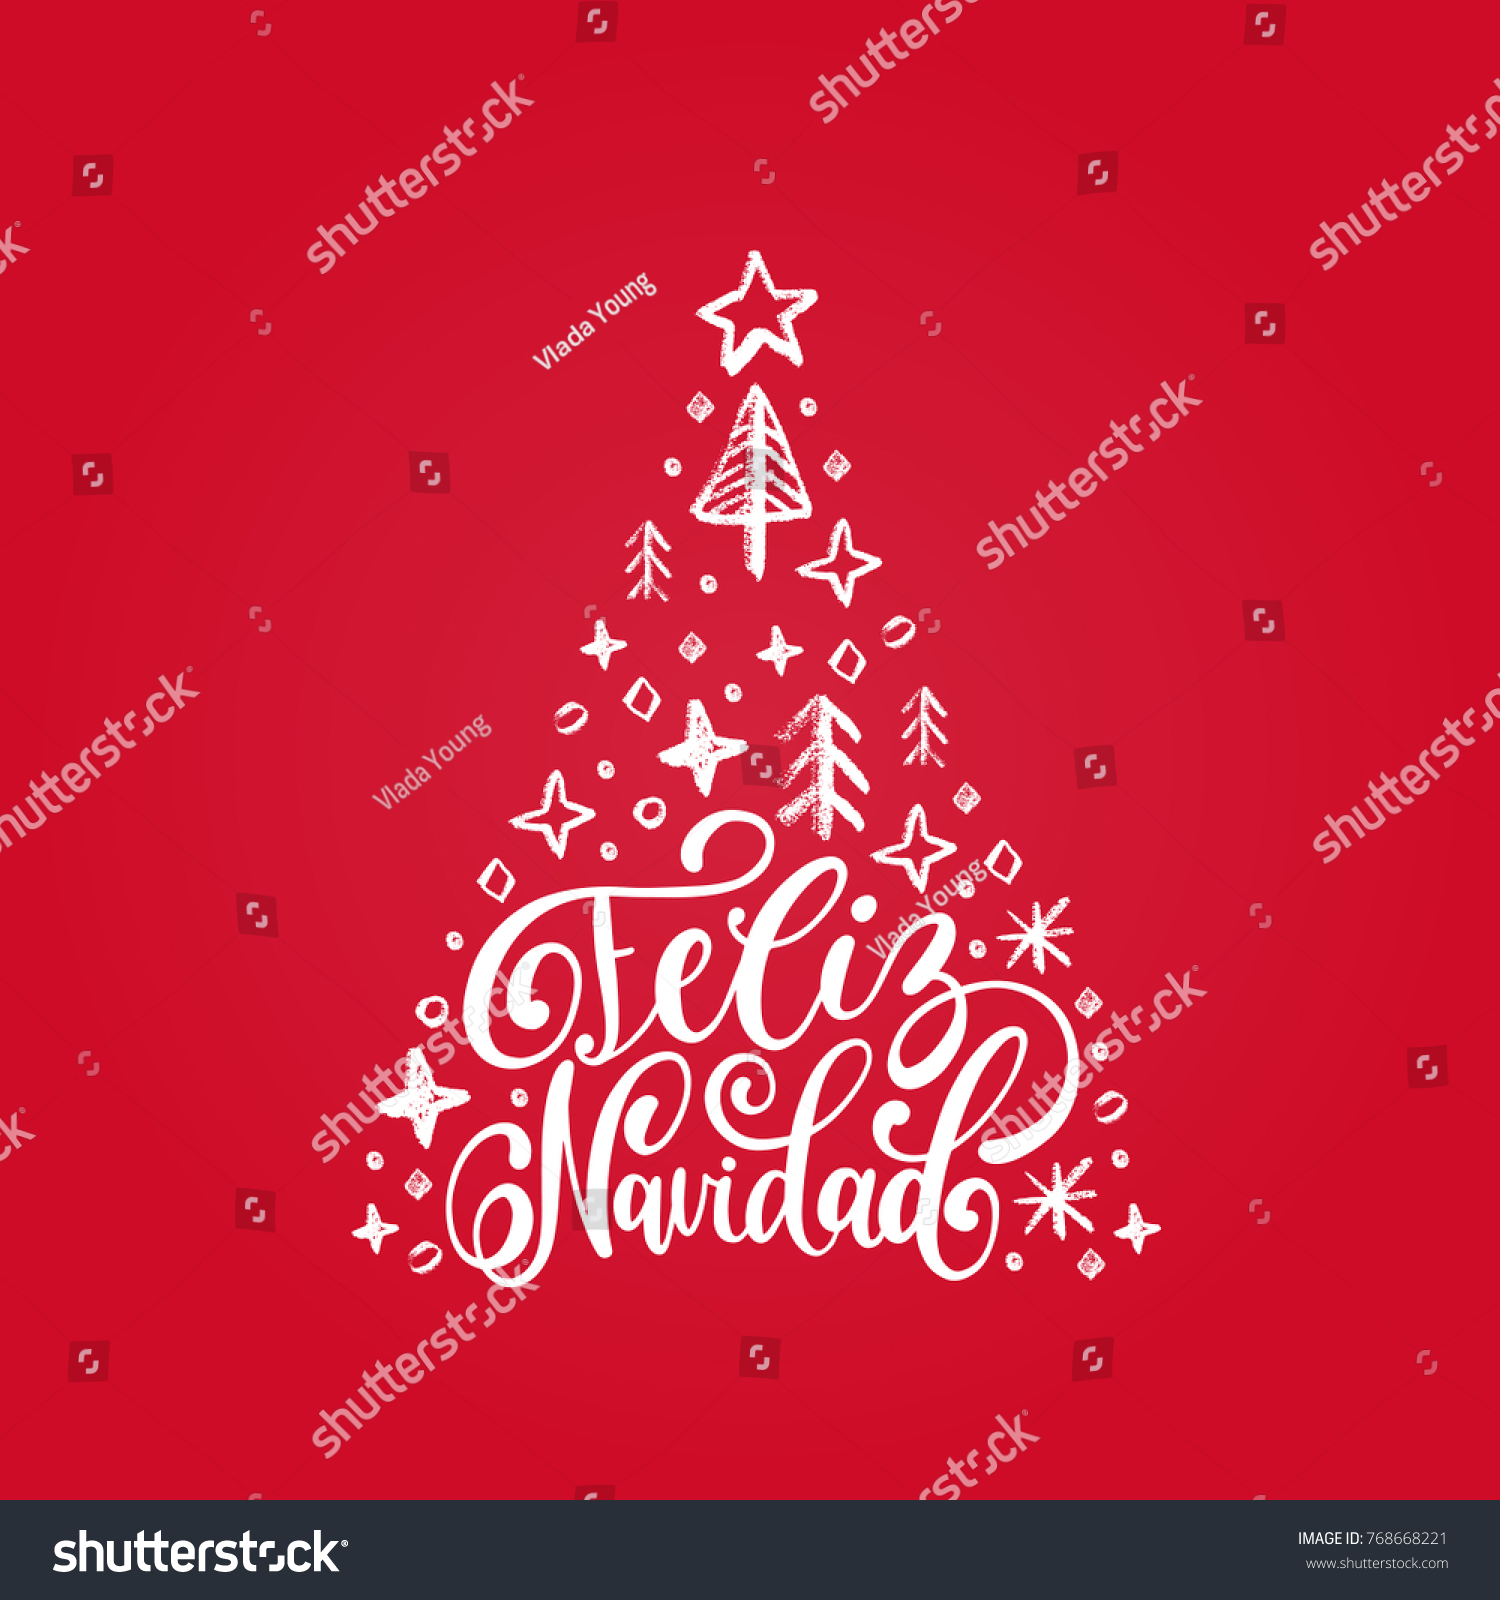 feliz navidad translated from spanish merry christmas hand lettering with spruce illustration on red background